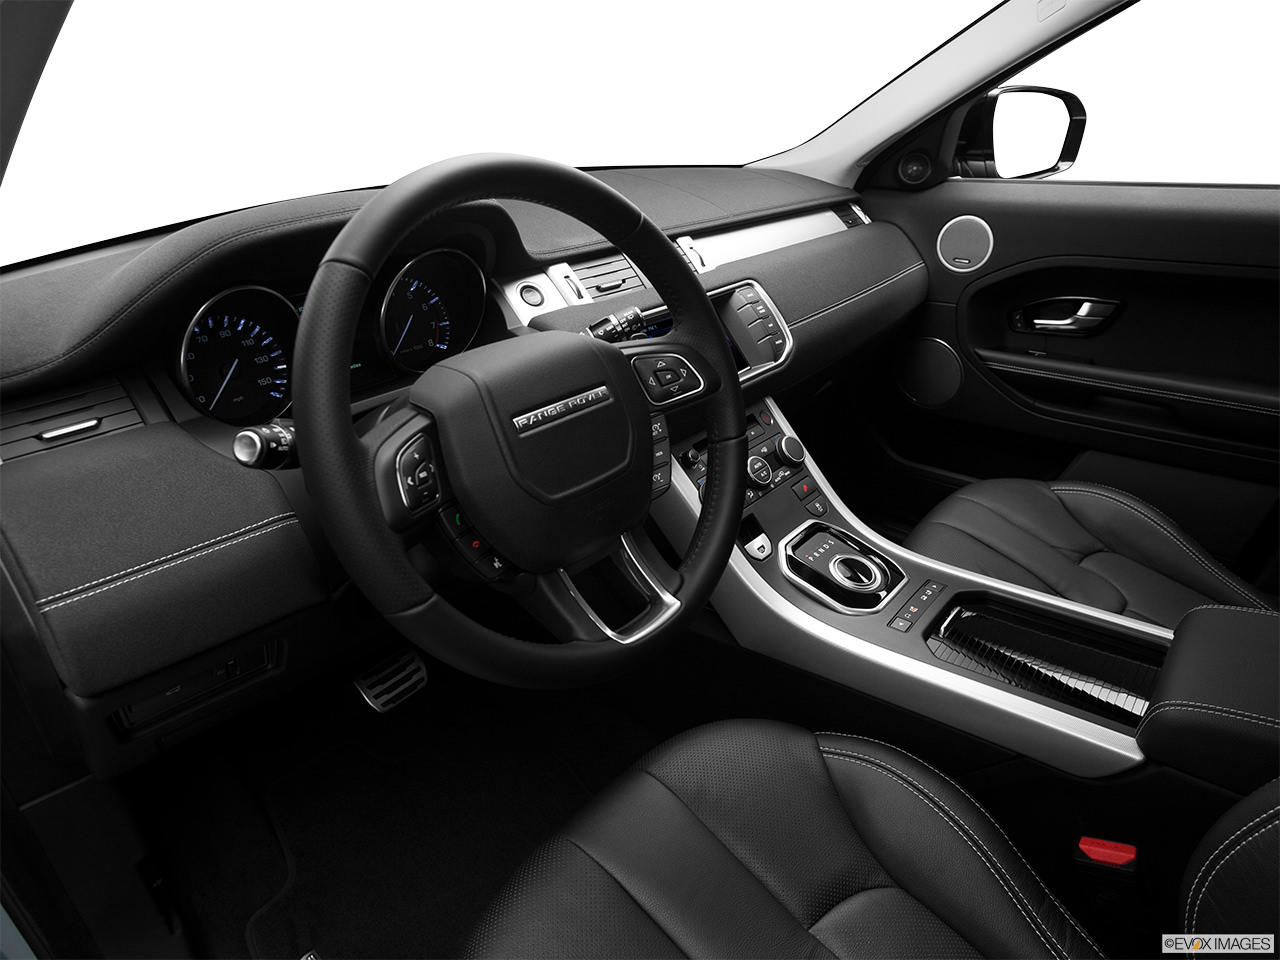 Land Rover Range Rover Evoque 2012 Interior